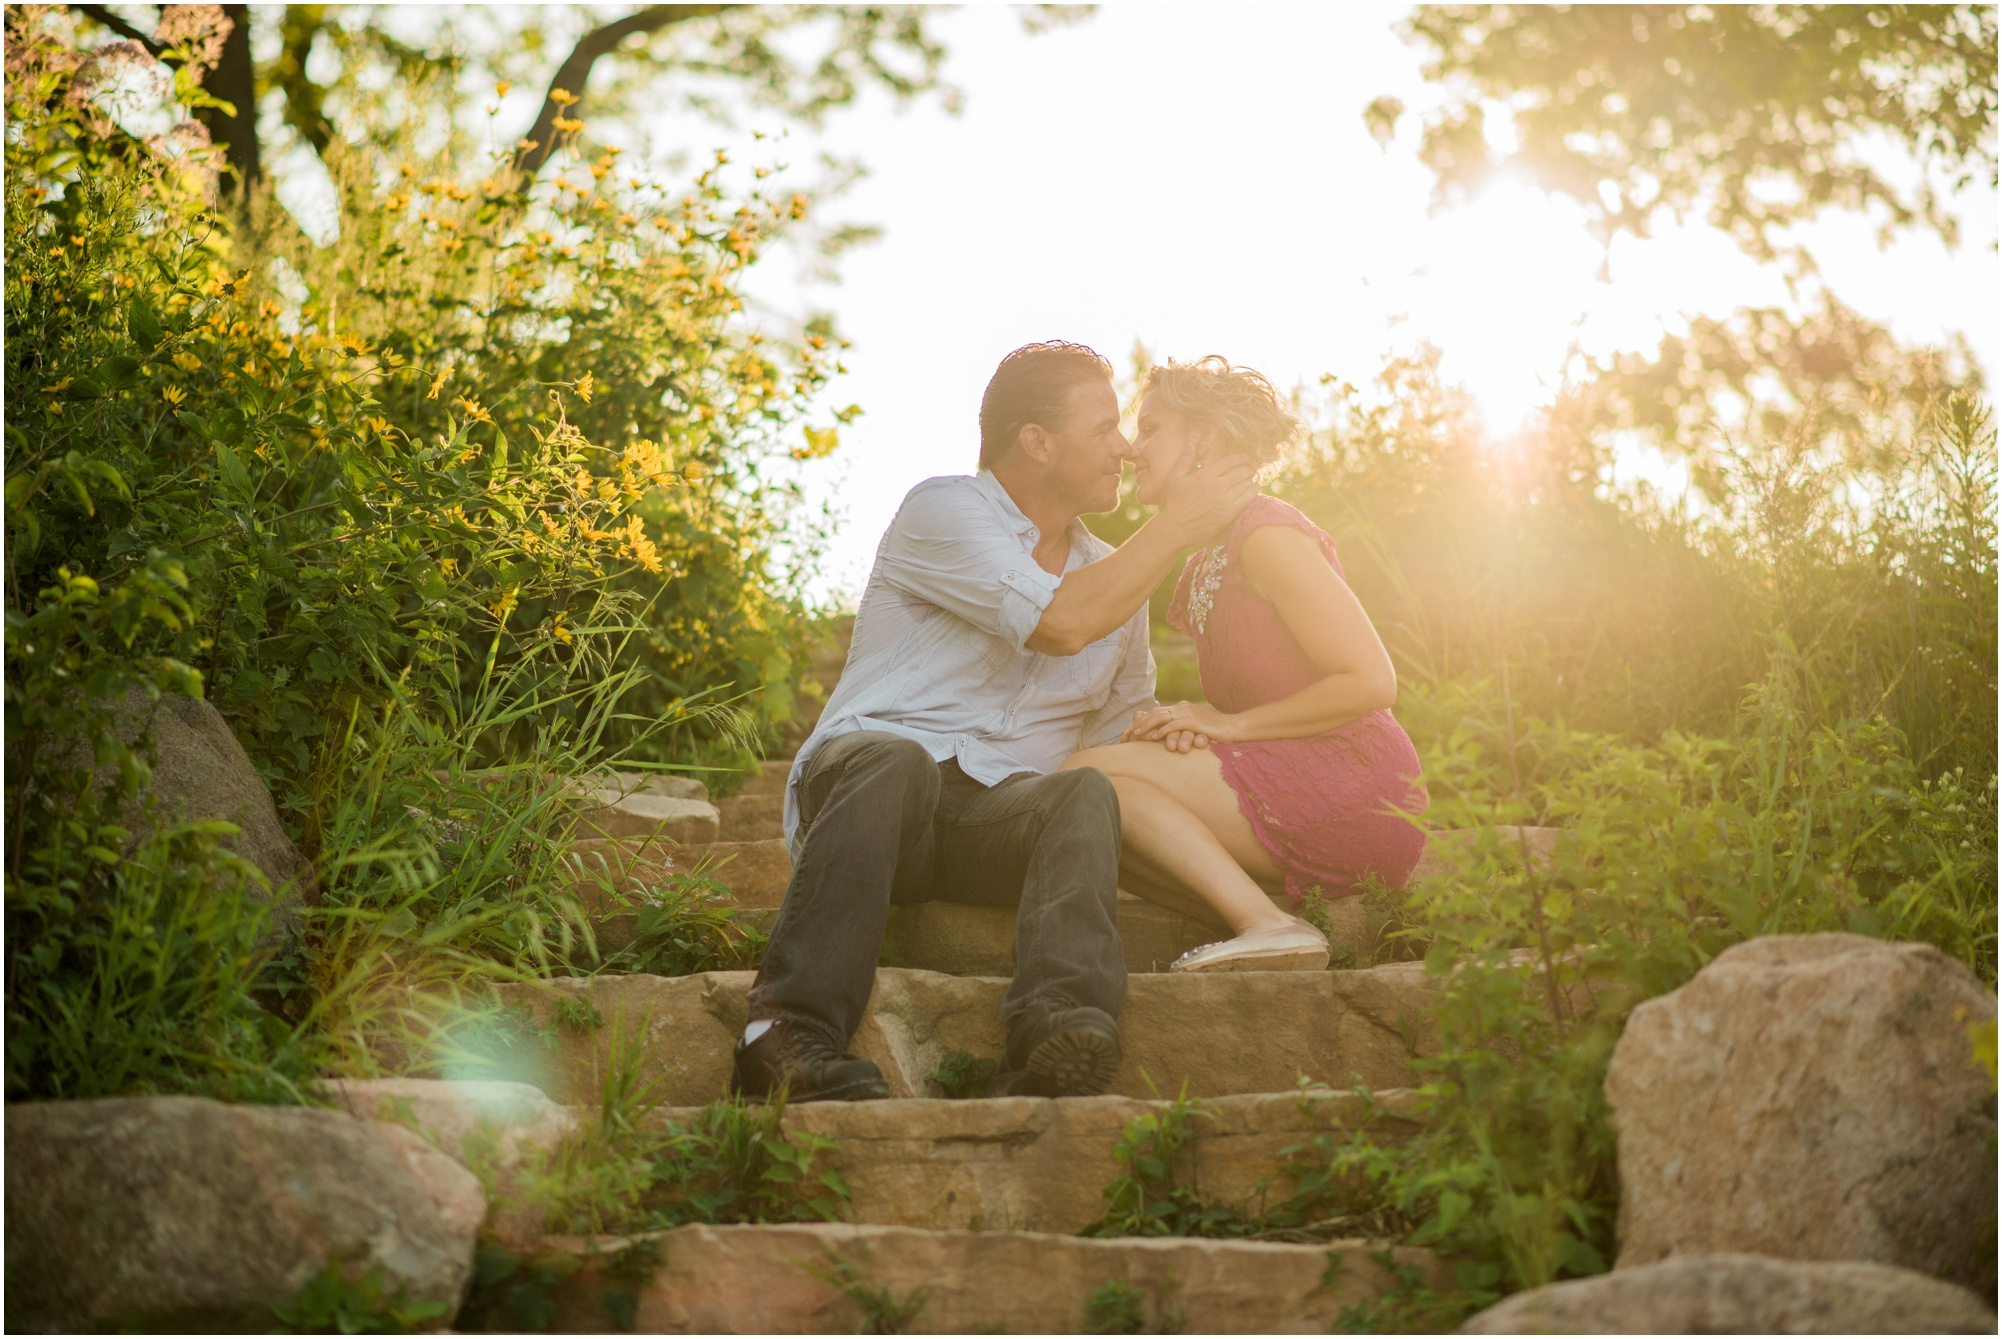 Madison-Engagement-Photographer-Picnic-Point-Madison-Wisconsin-Engagement-Session-Kelli-and-Robert-56.jpg